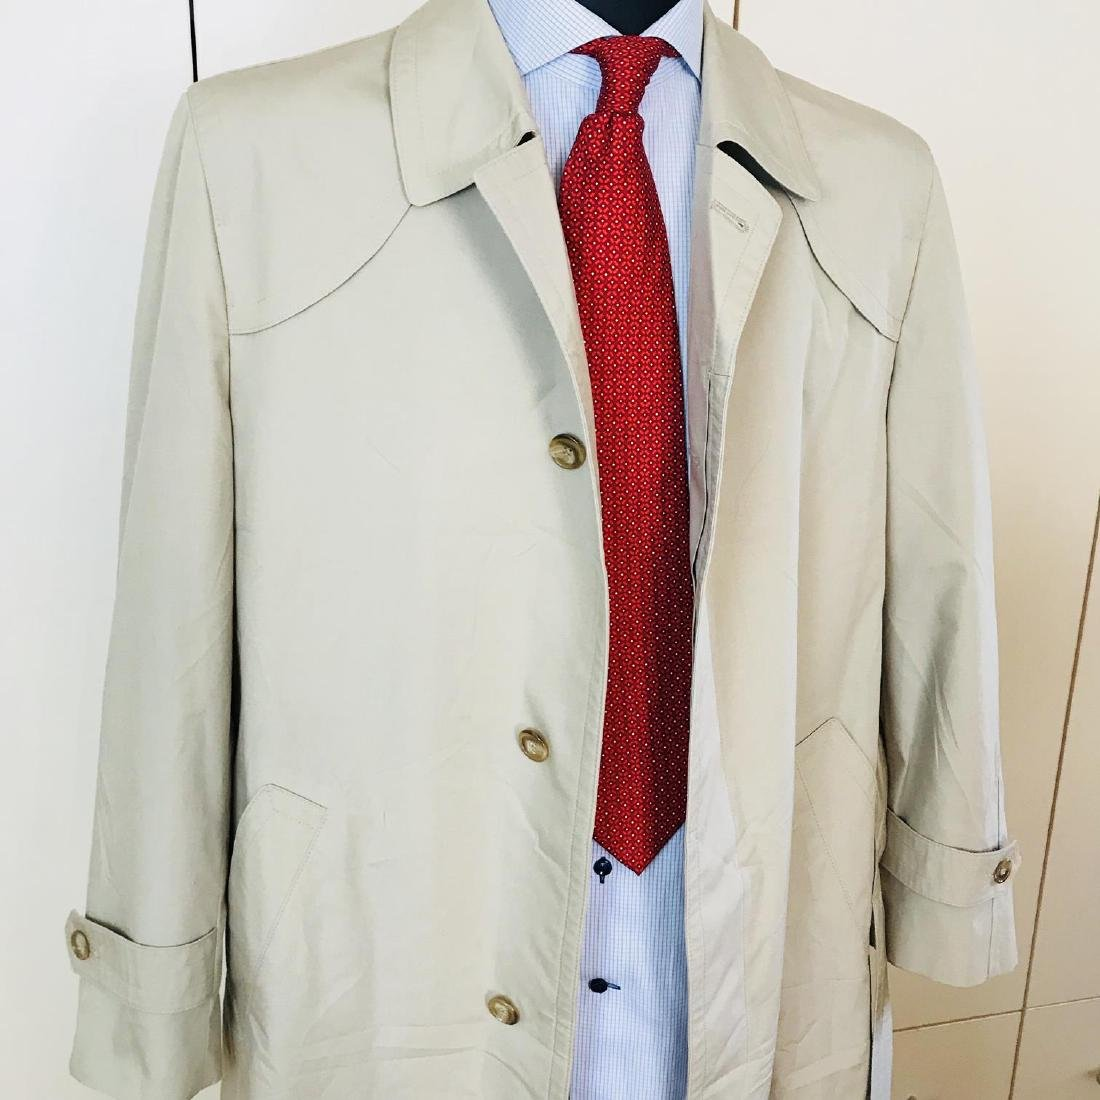 Vintage Men's Beige Trench Coat Size US 40 / EUR 50 - 6